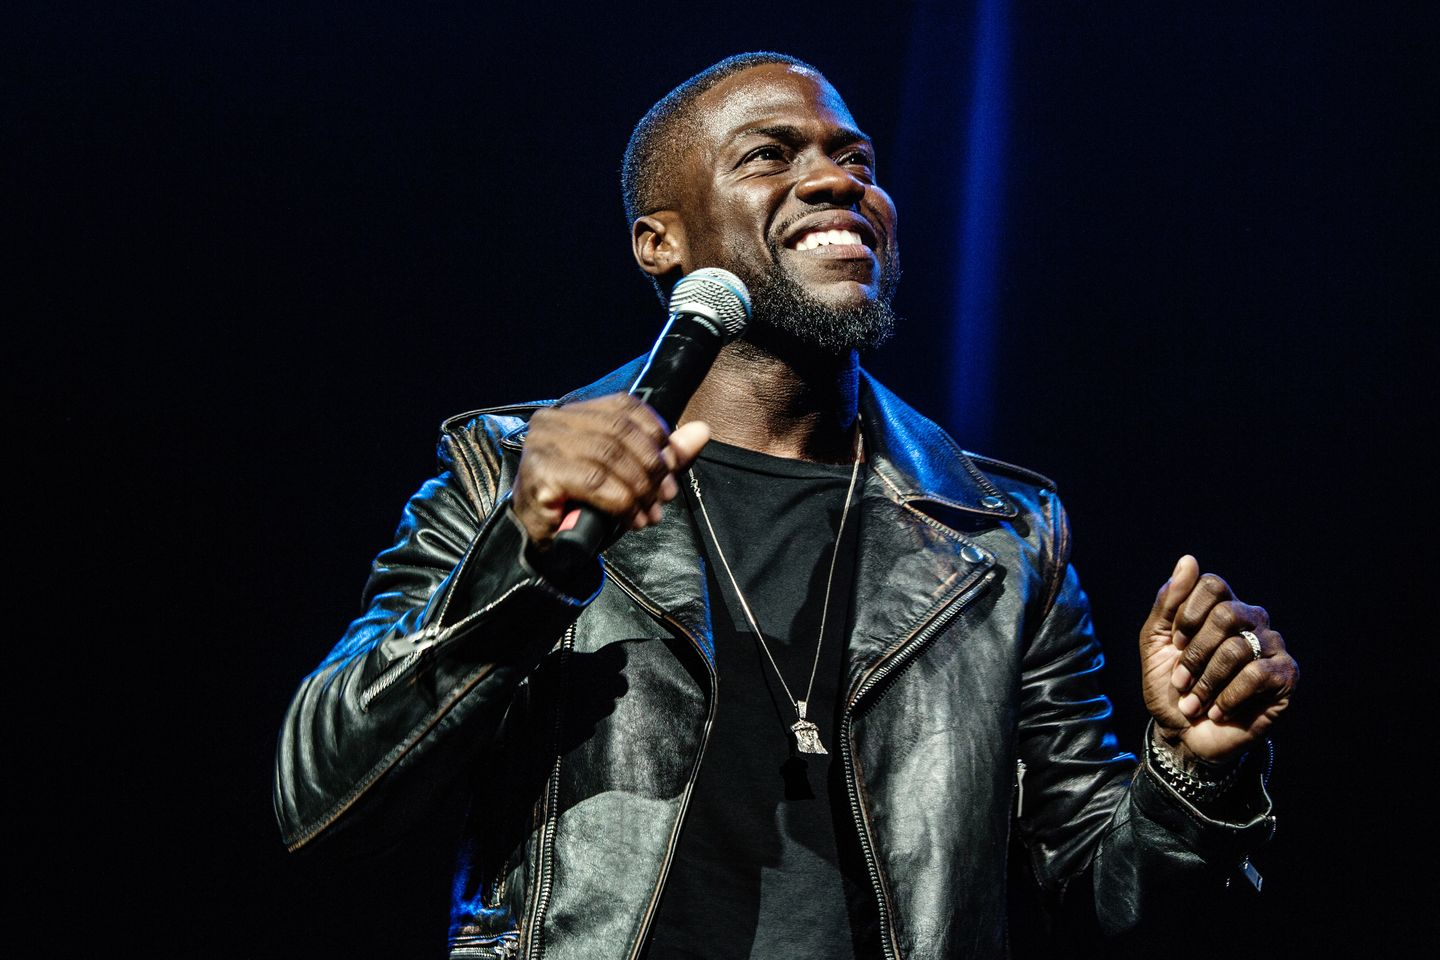 Kevin Hart Irresponsible Tour stand up